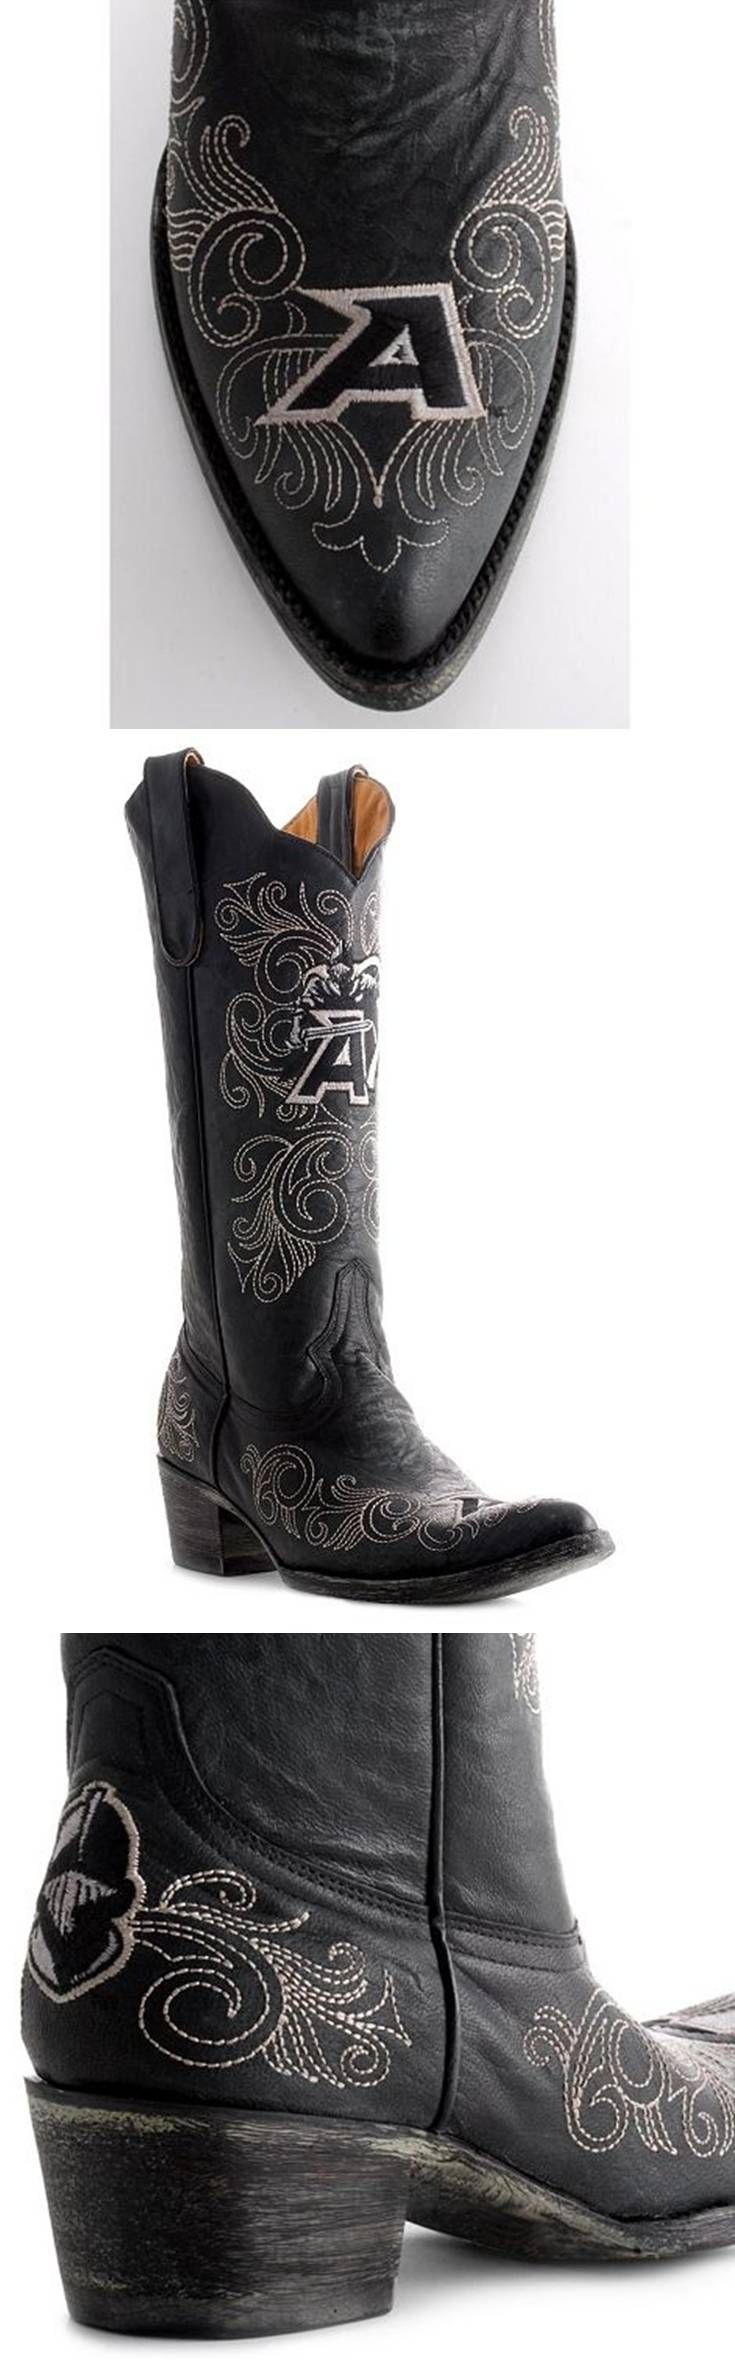 Army - USMA - United States Military Academy Black Knights -West Point - distressed pointed toe cowboy / cowgirl boots with logo